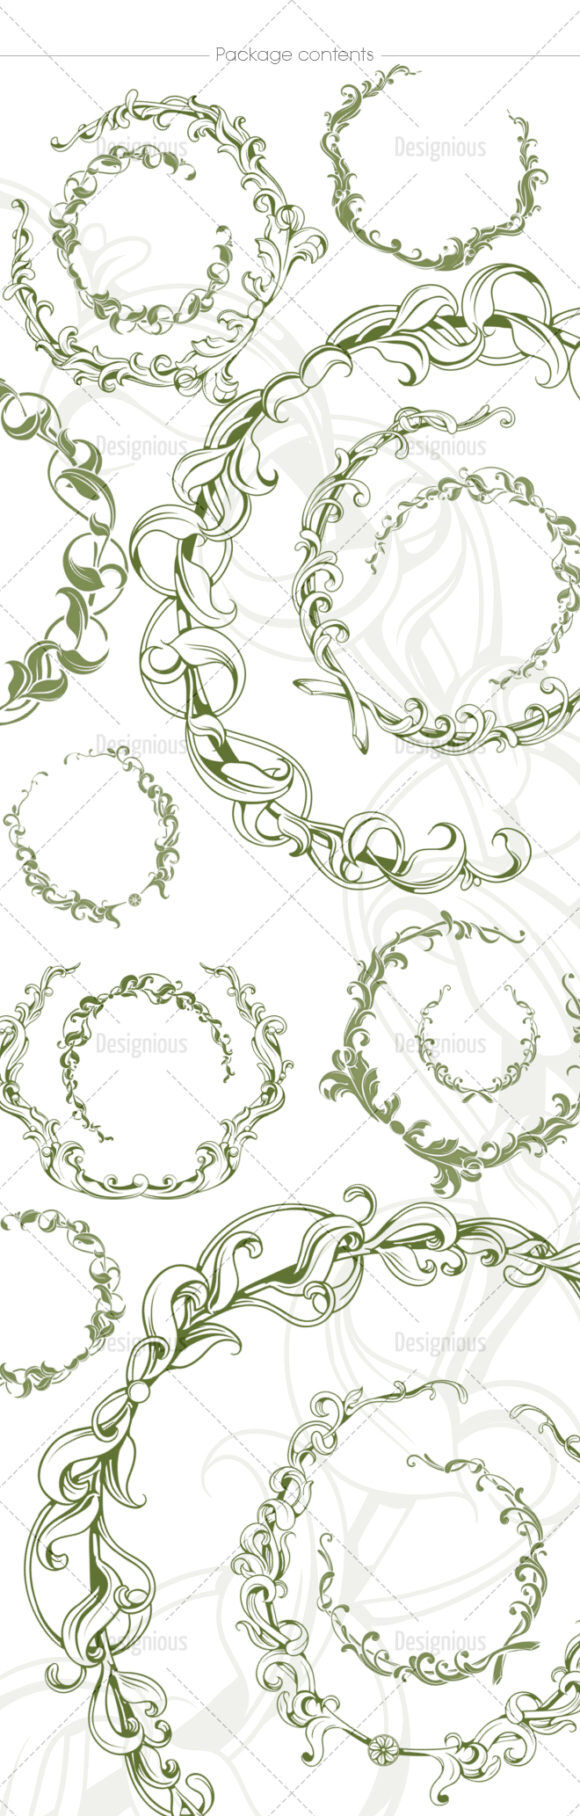 Floral Brushes Pack 54 Floral brushes [tag]